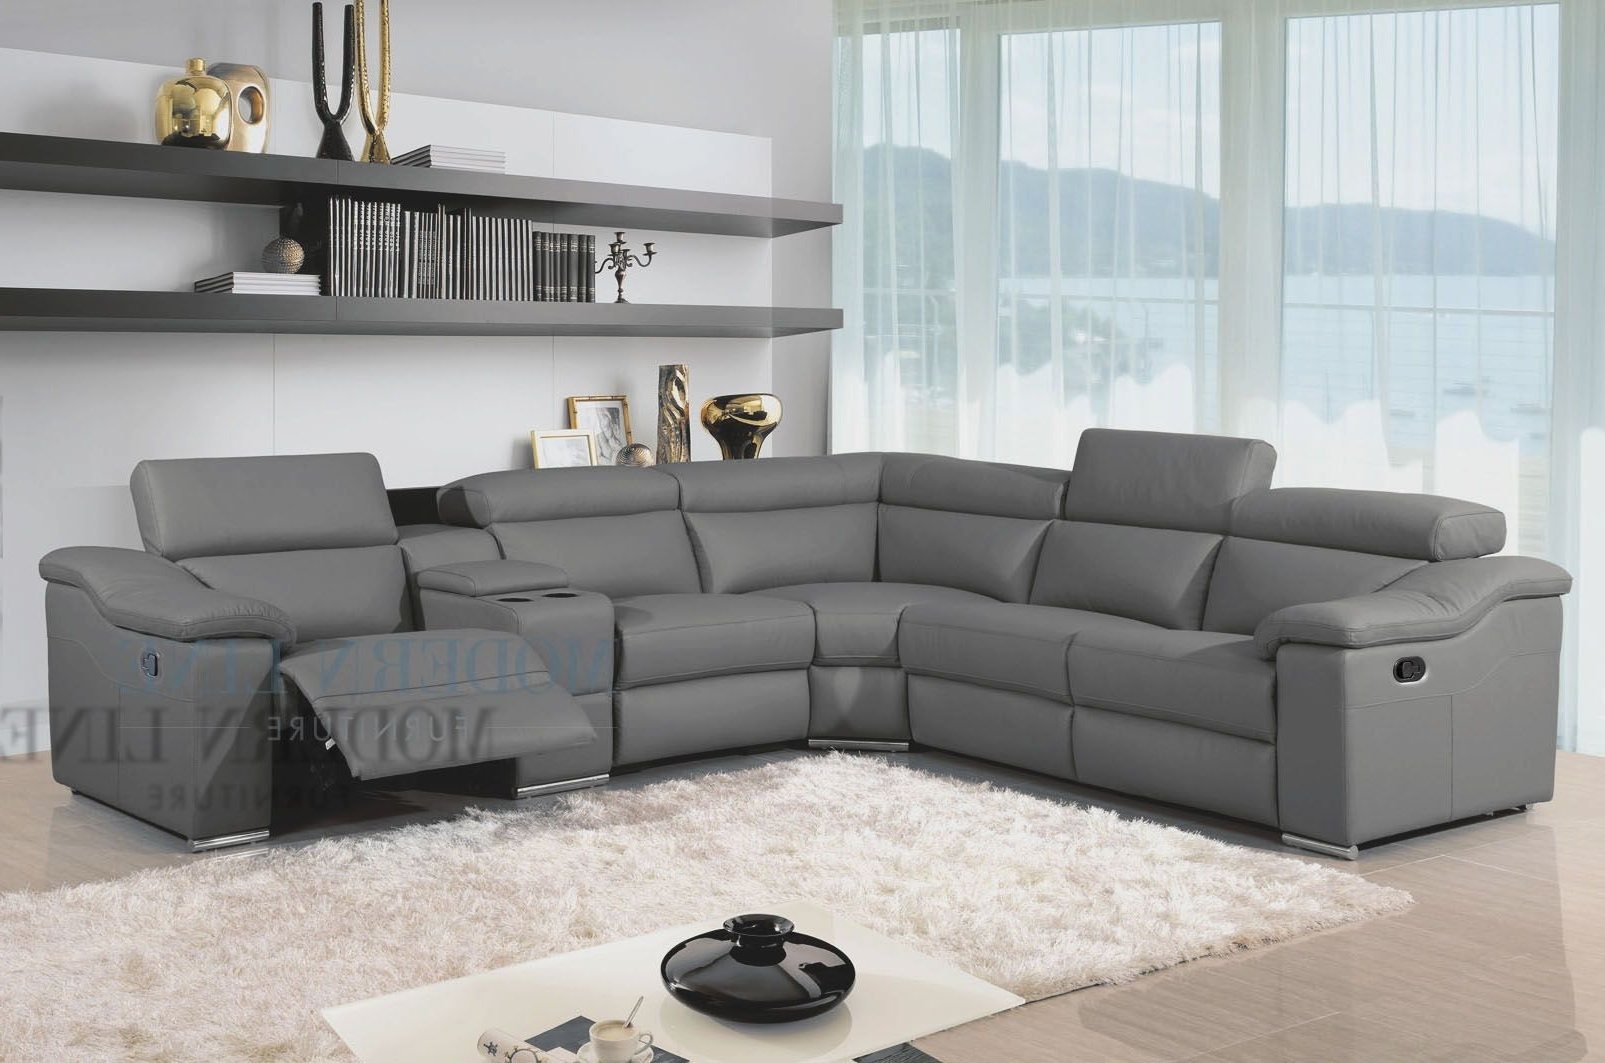 Well Liked Modern Reclining Leather Sofas Pertaining To Awesome Great Charcoal Grey Sectional Sofa 29 About Remodel Home (View 4 of 15)